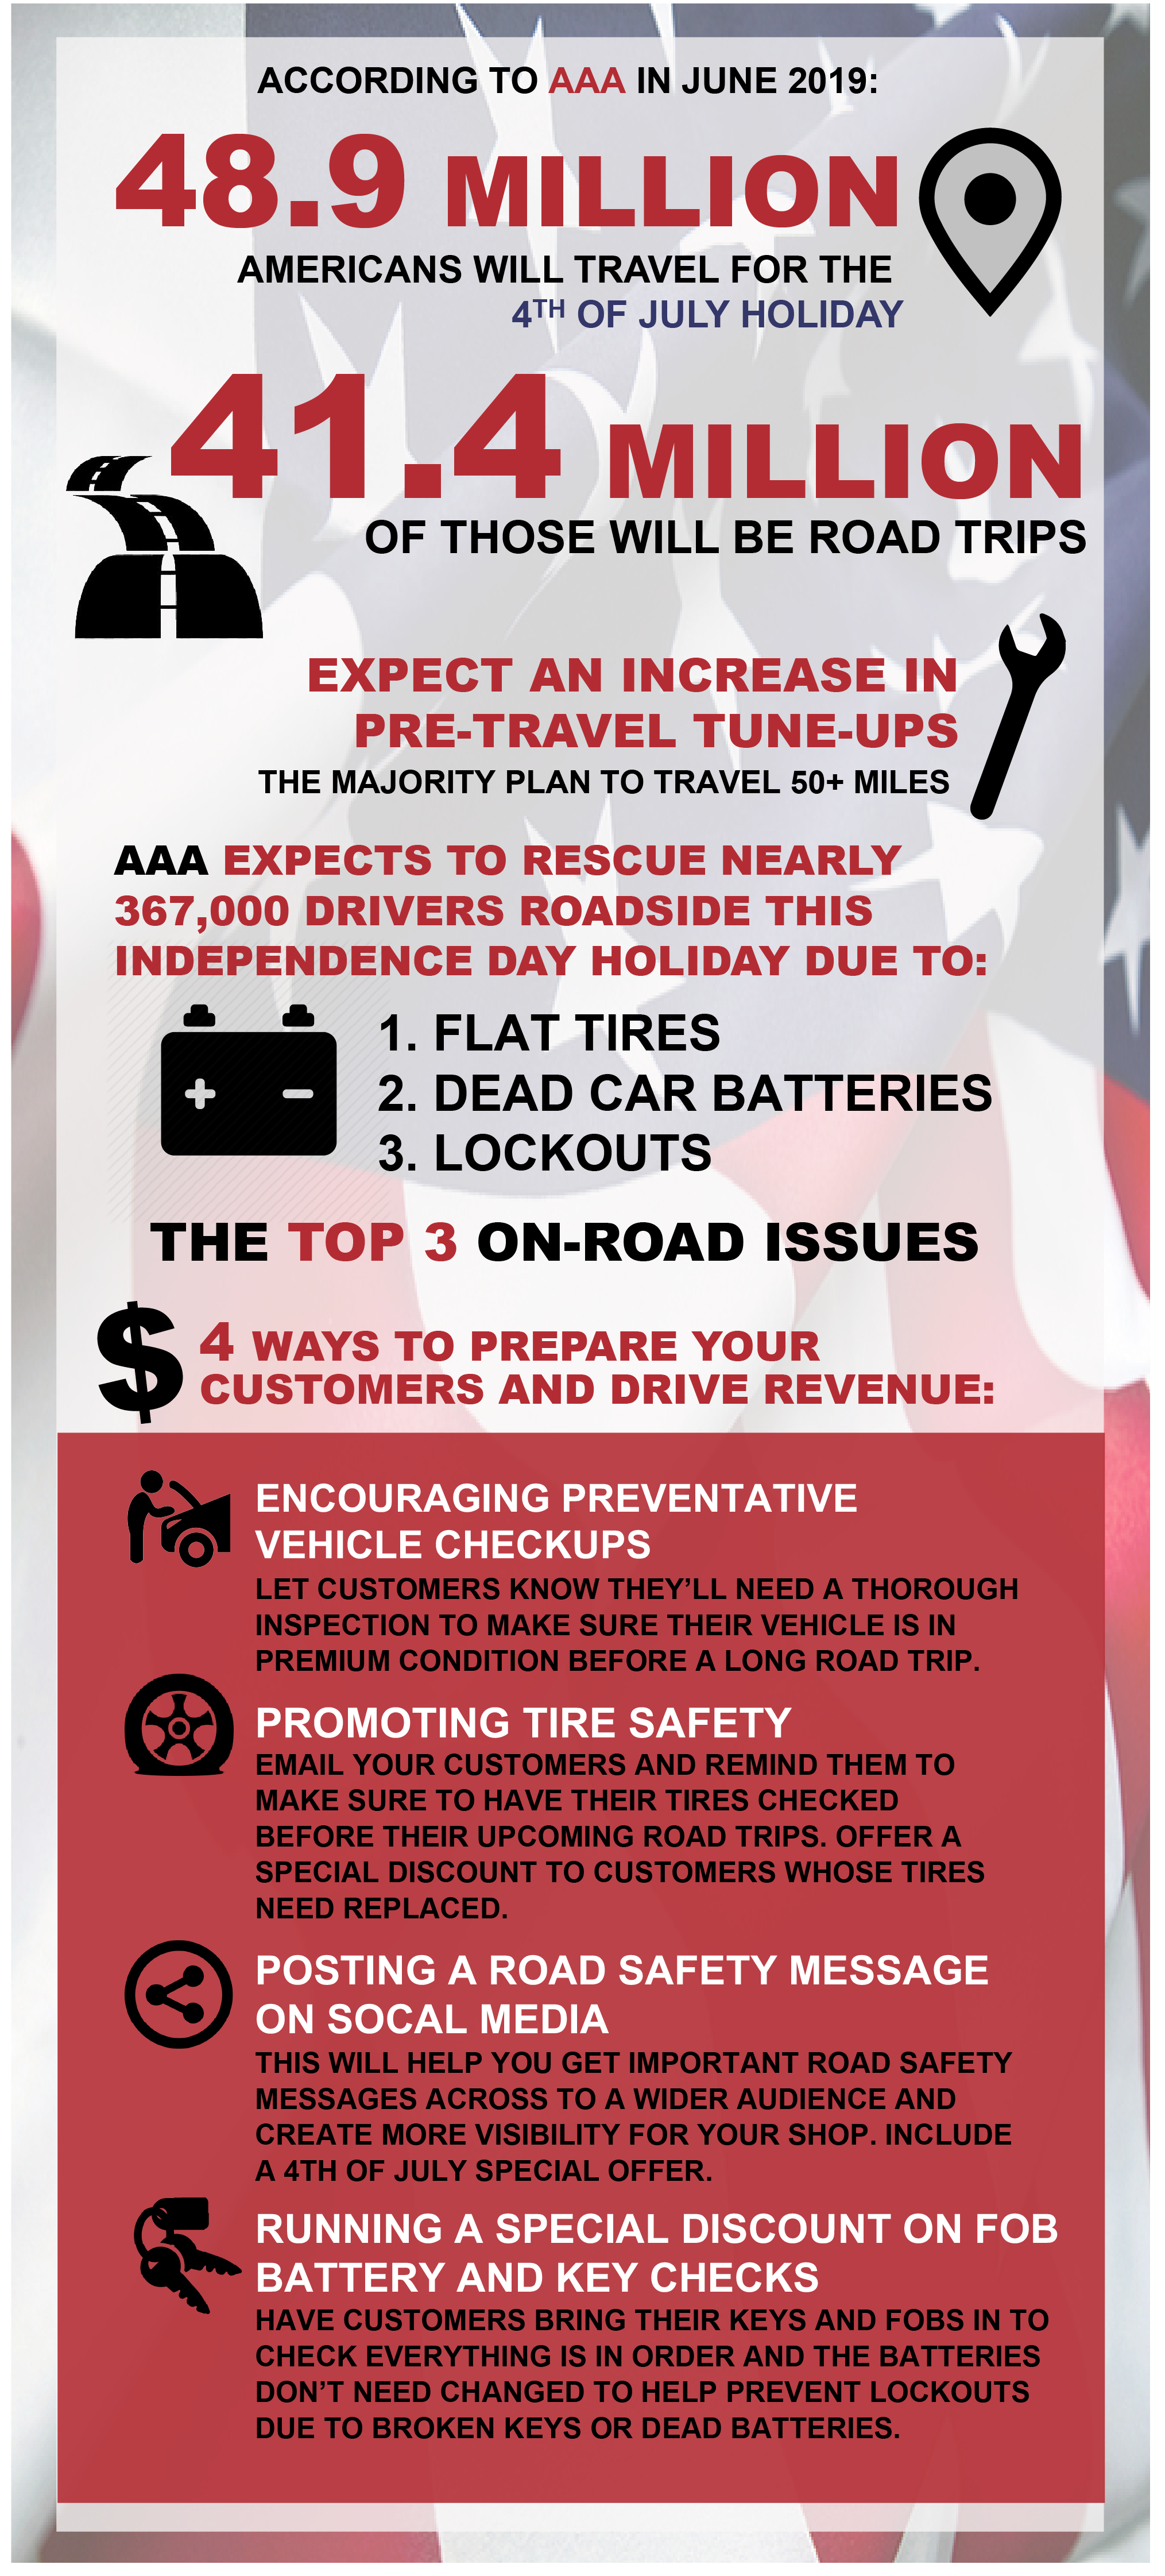 4 Ways to Drive Revenue and Prepare Customers for 4th of July Road Trips ASA